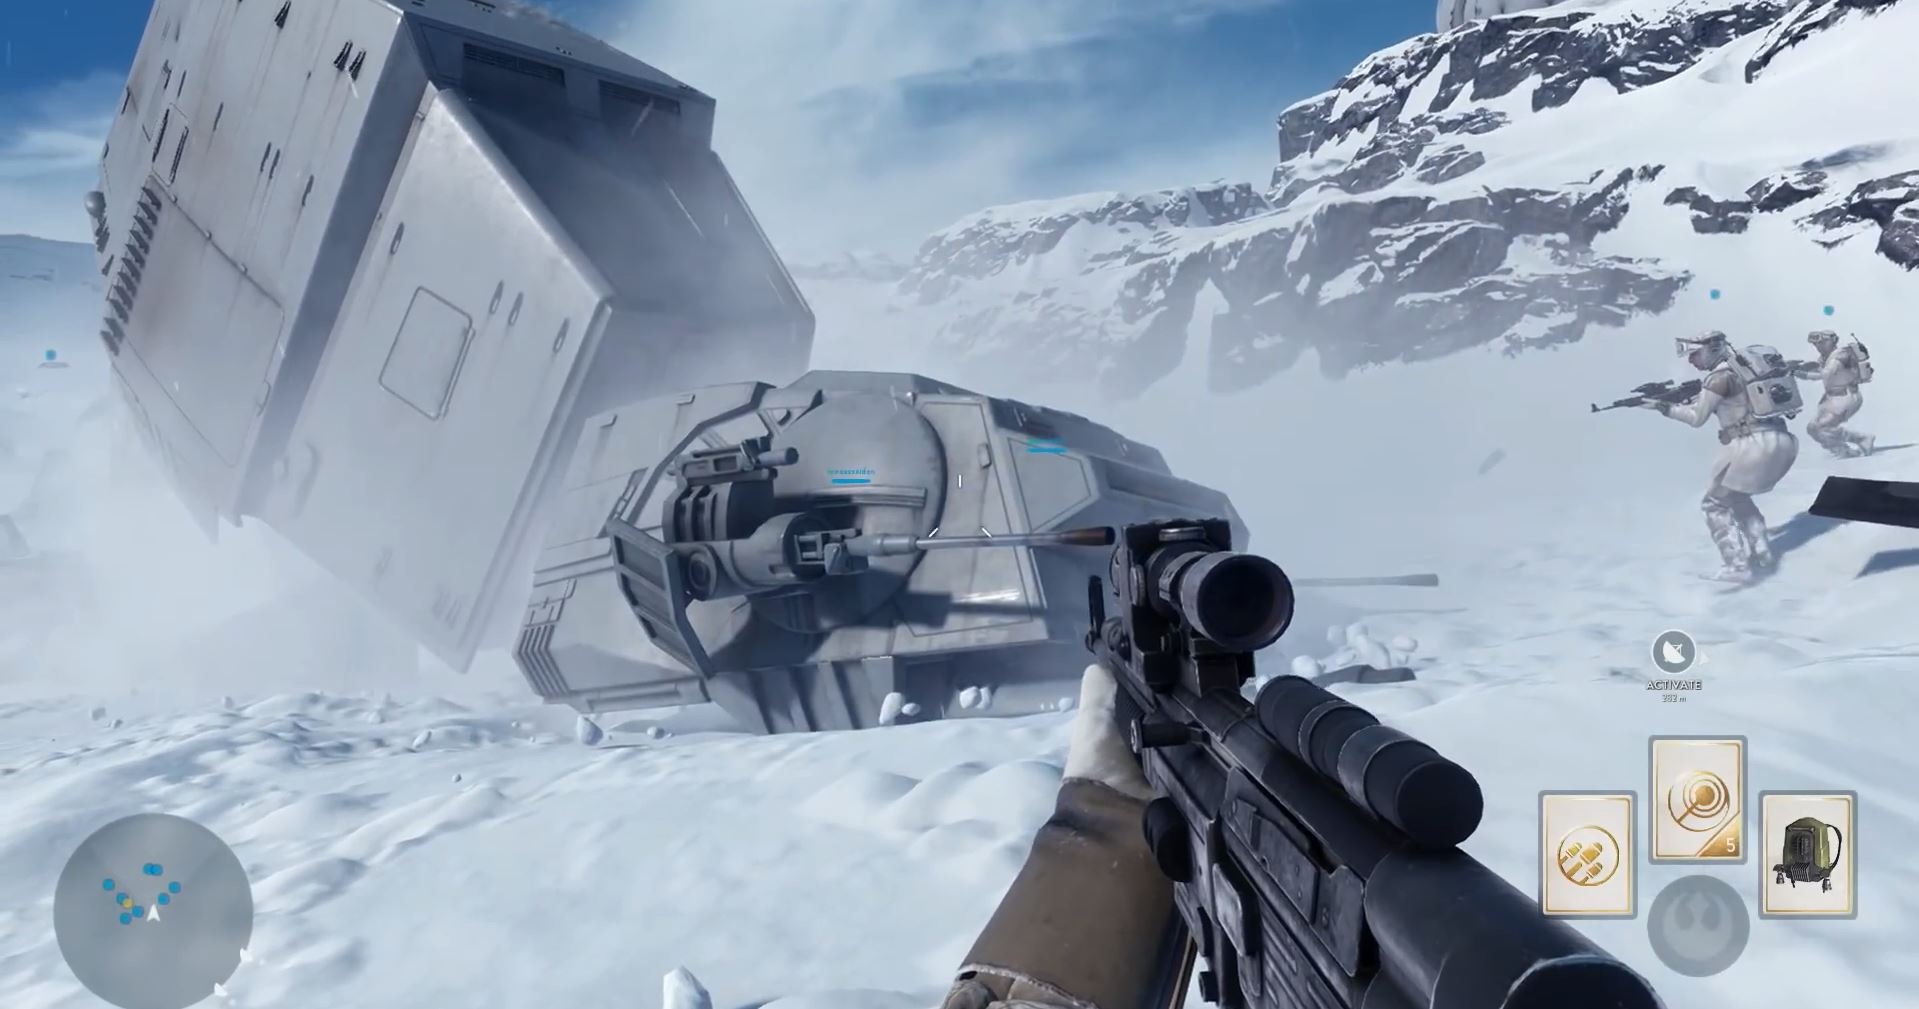 AT-AT brought down - Star Wars Battlefront Preview